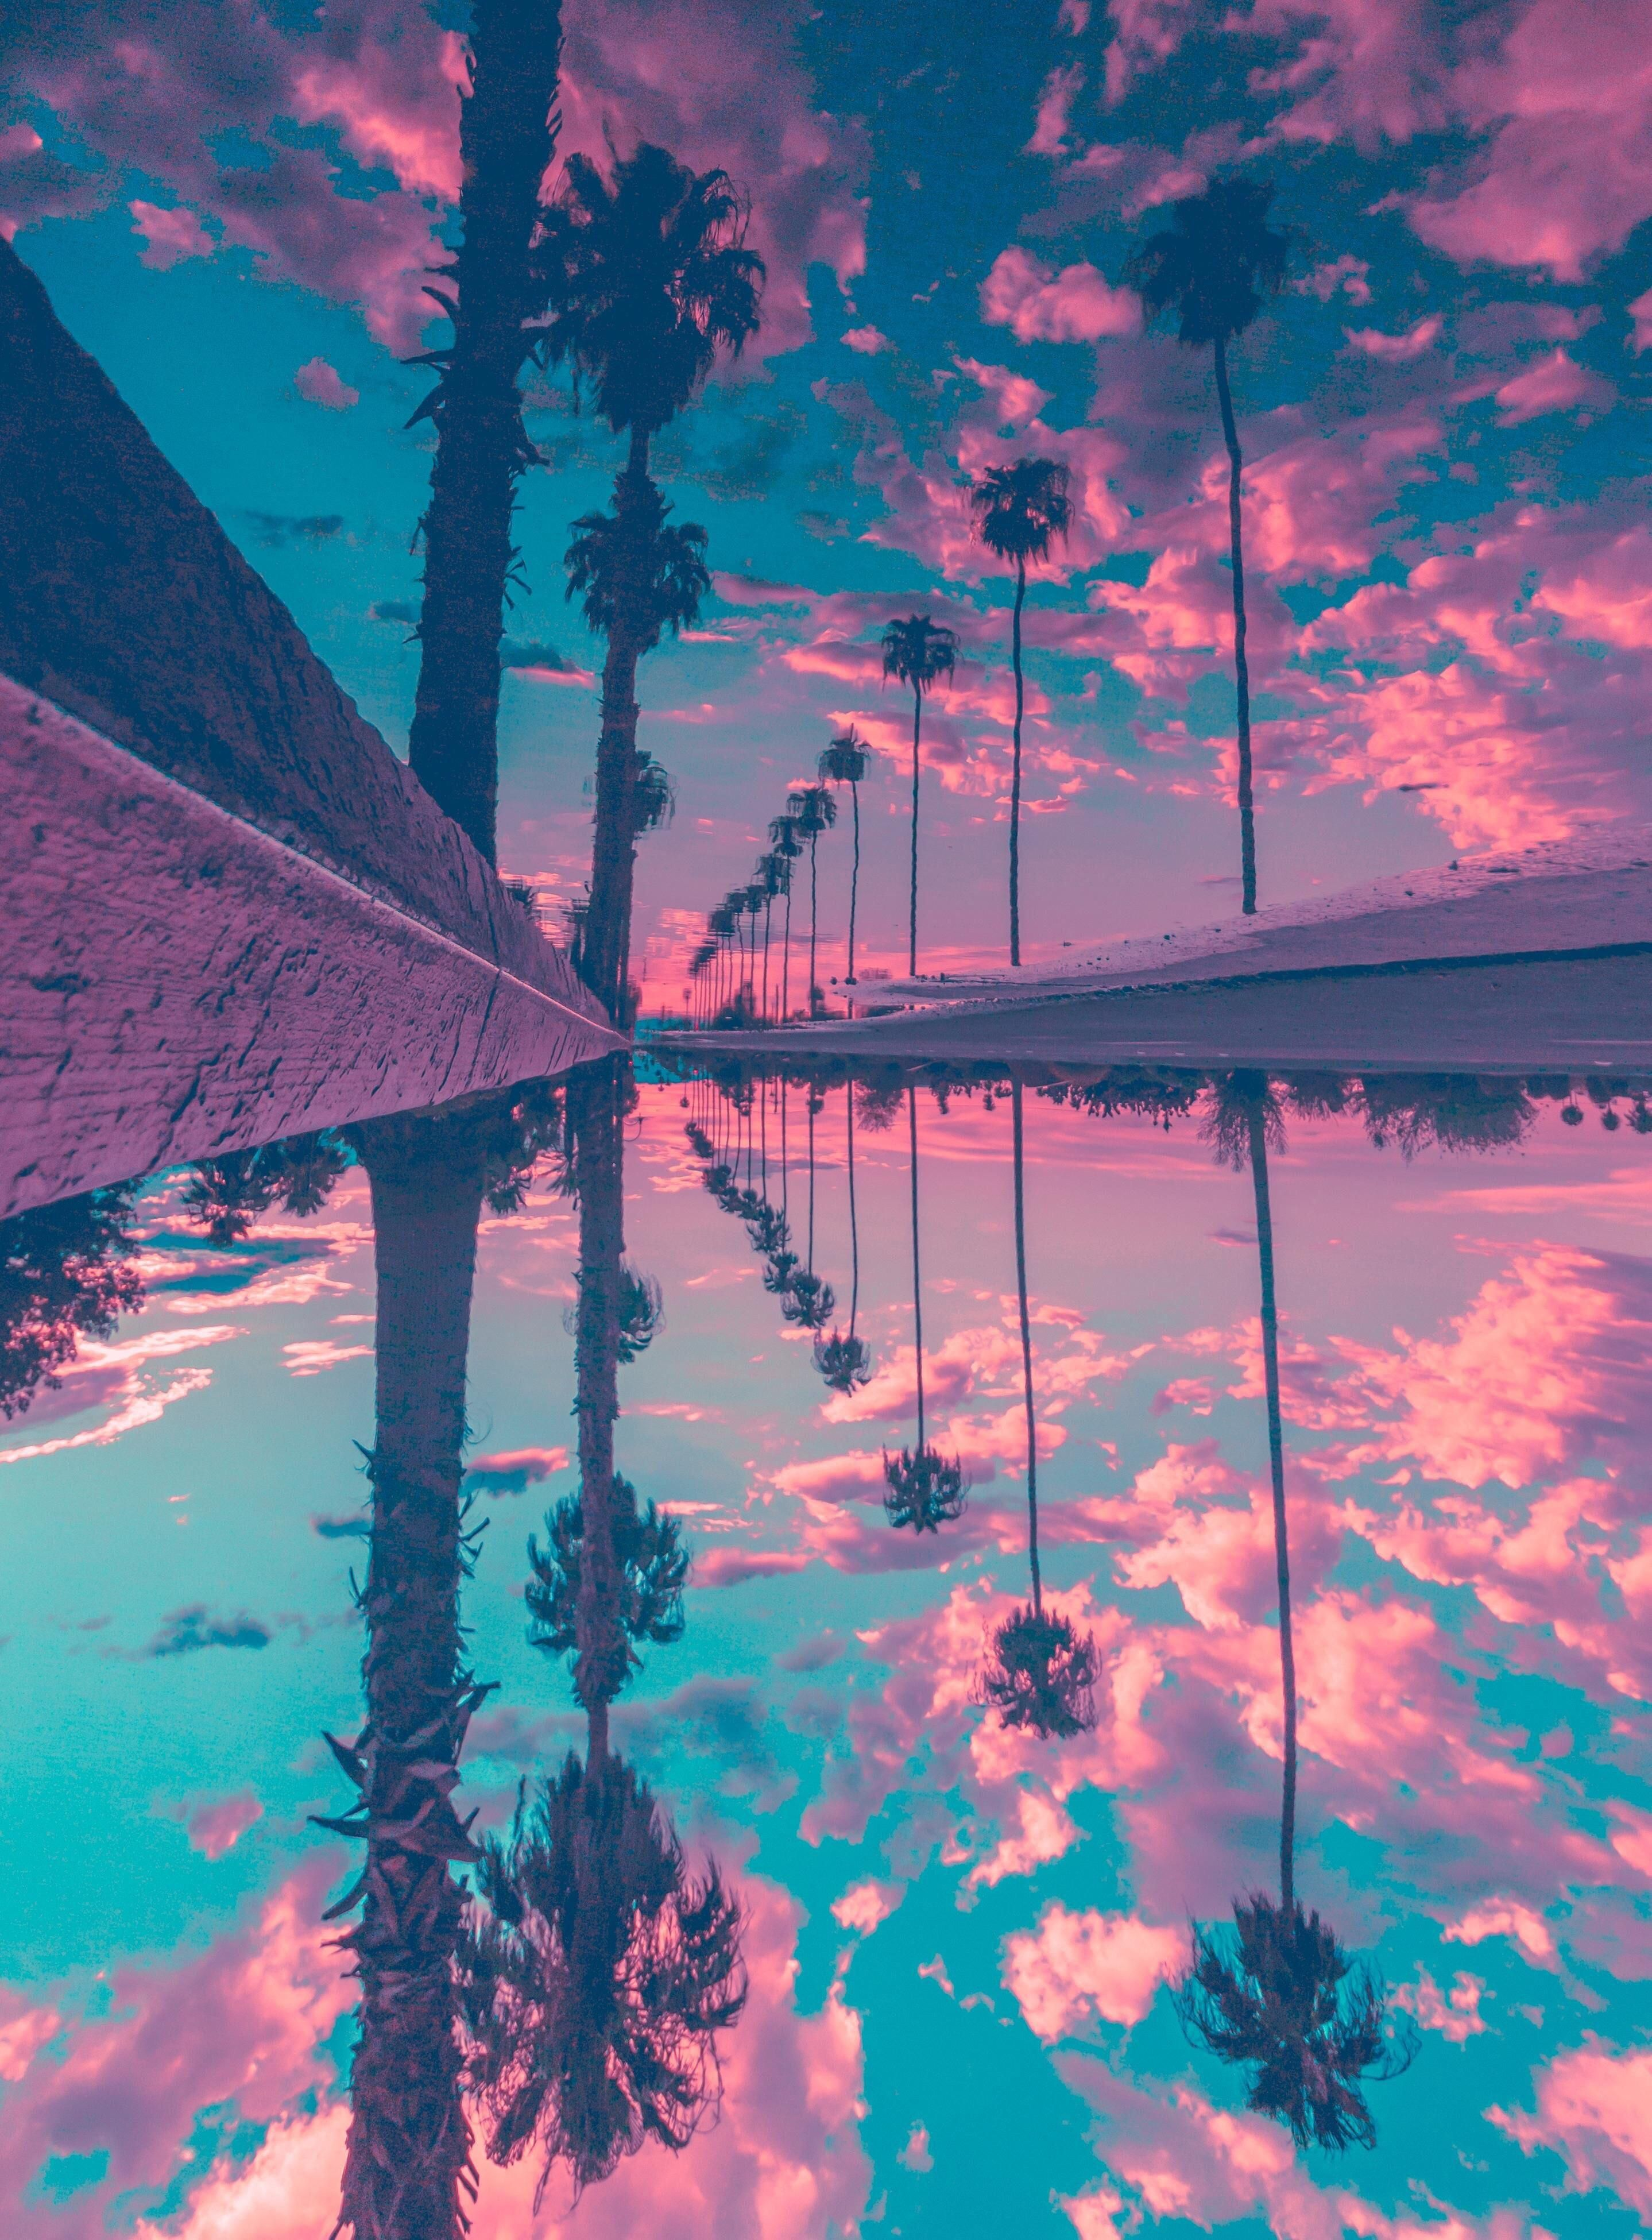 Pin on ( X post from r/itookapicture) pink+ blue =vapor ...